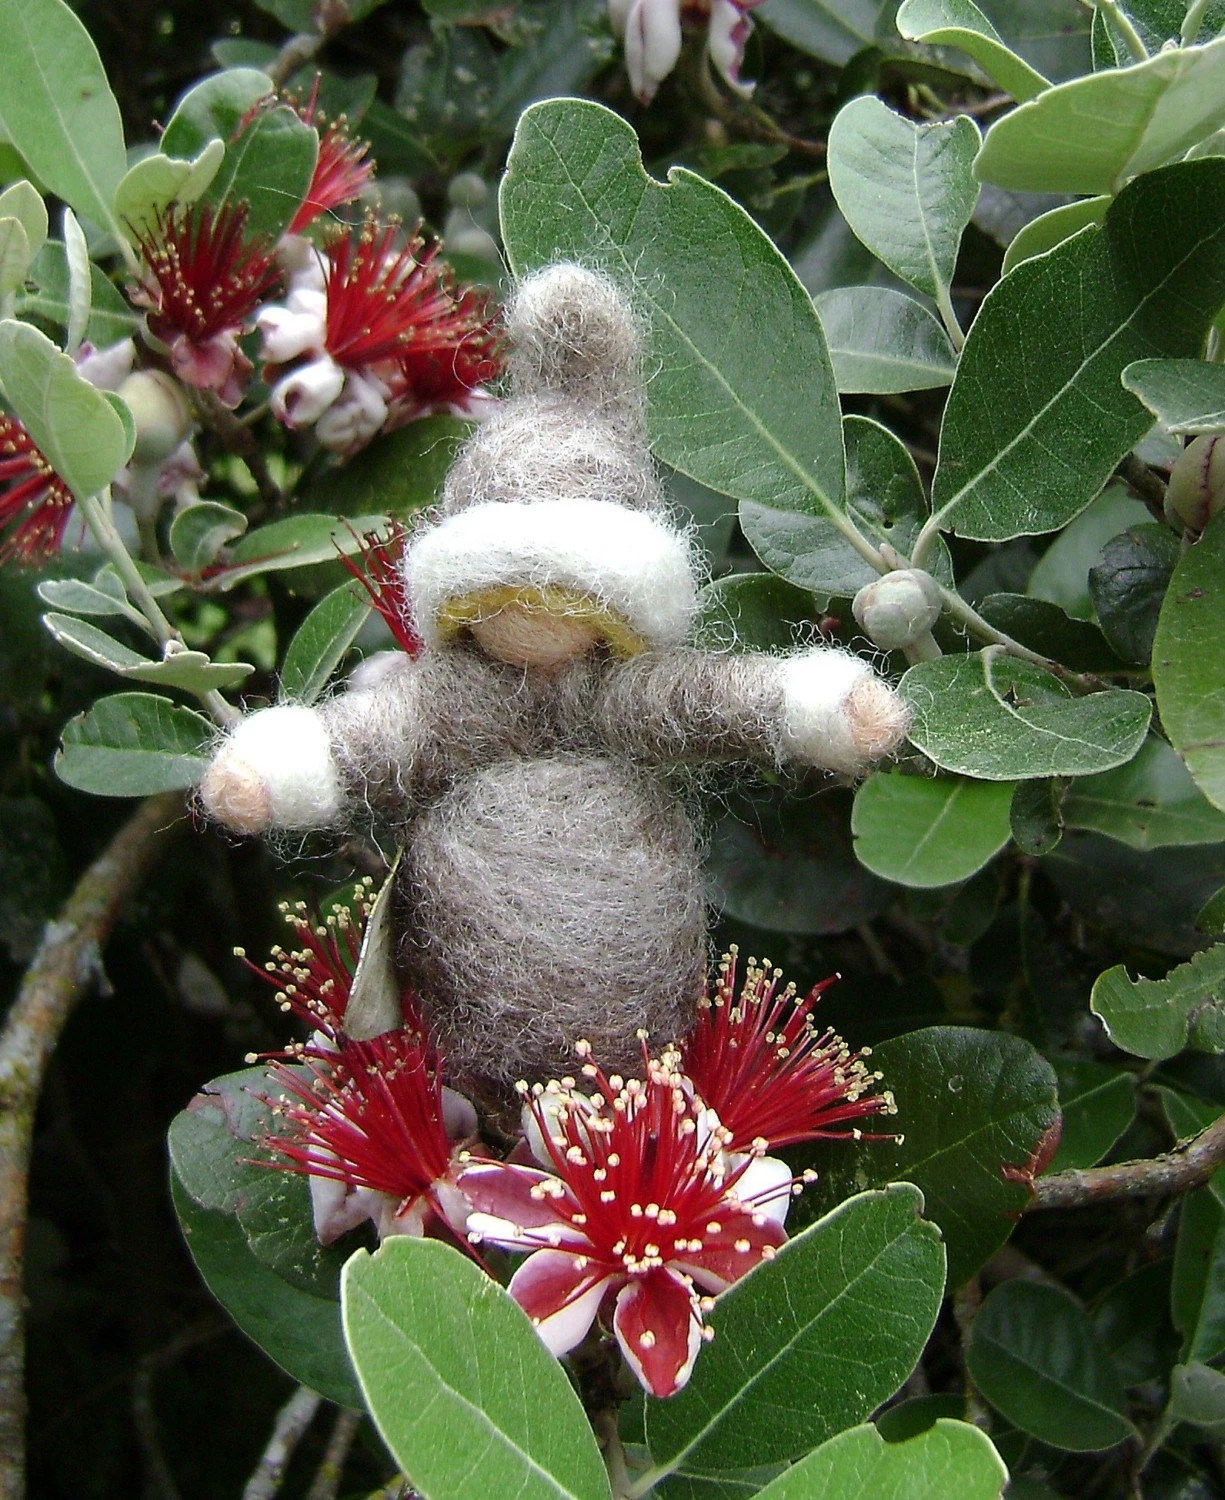 A Softearth Feijoa flower child   THIS IS RESERVED FOR  thepuddlepeople